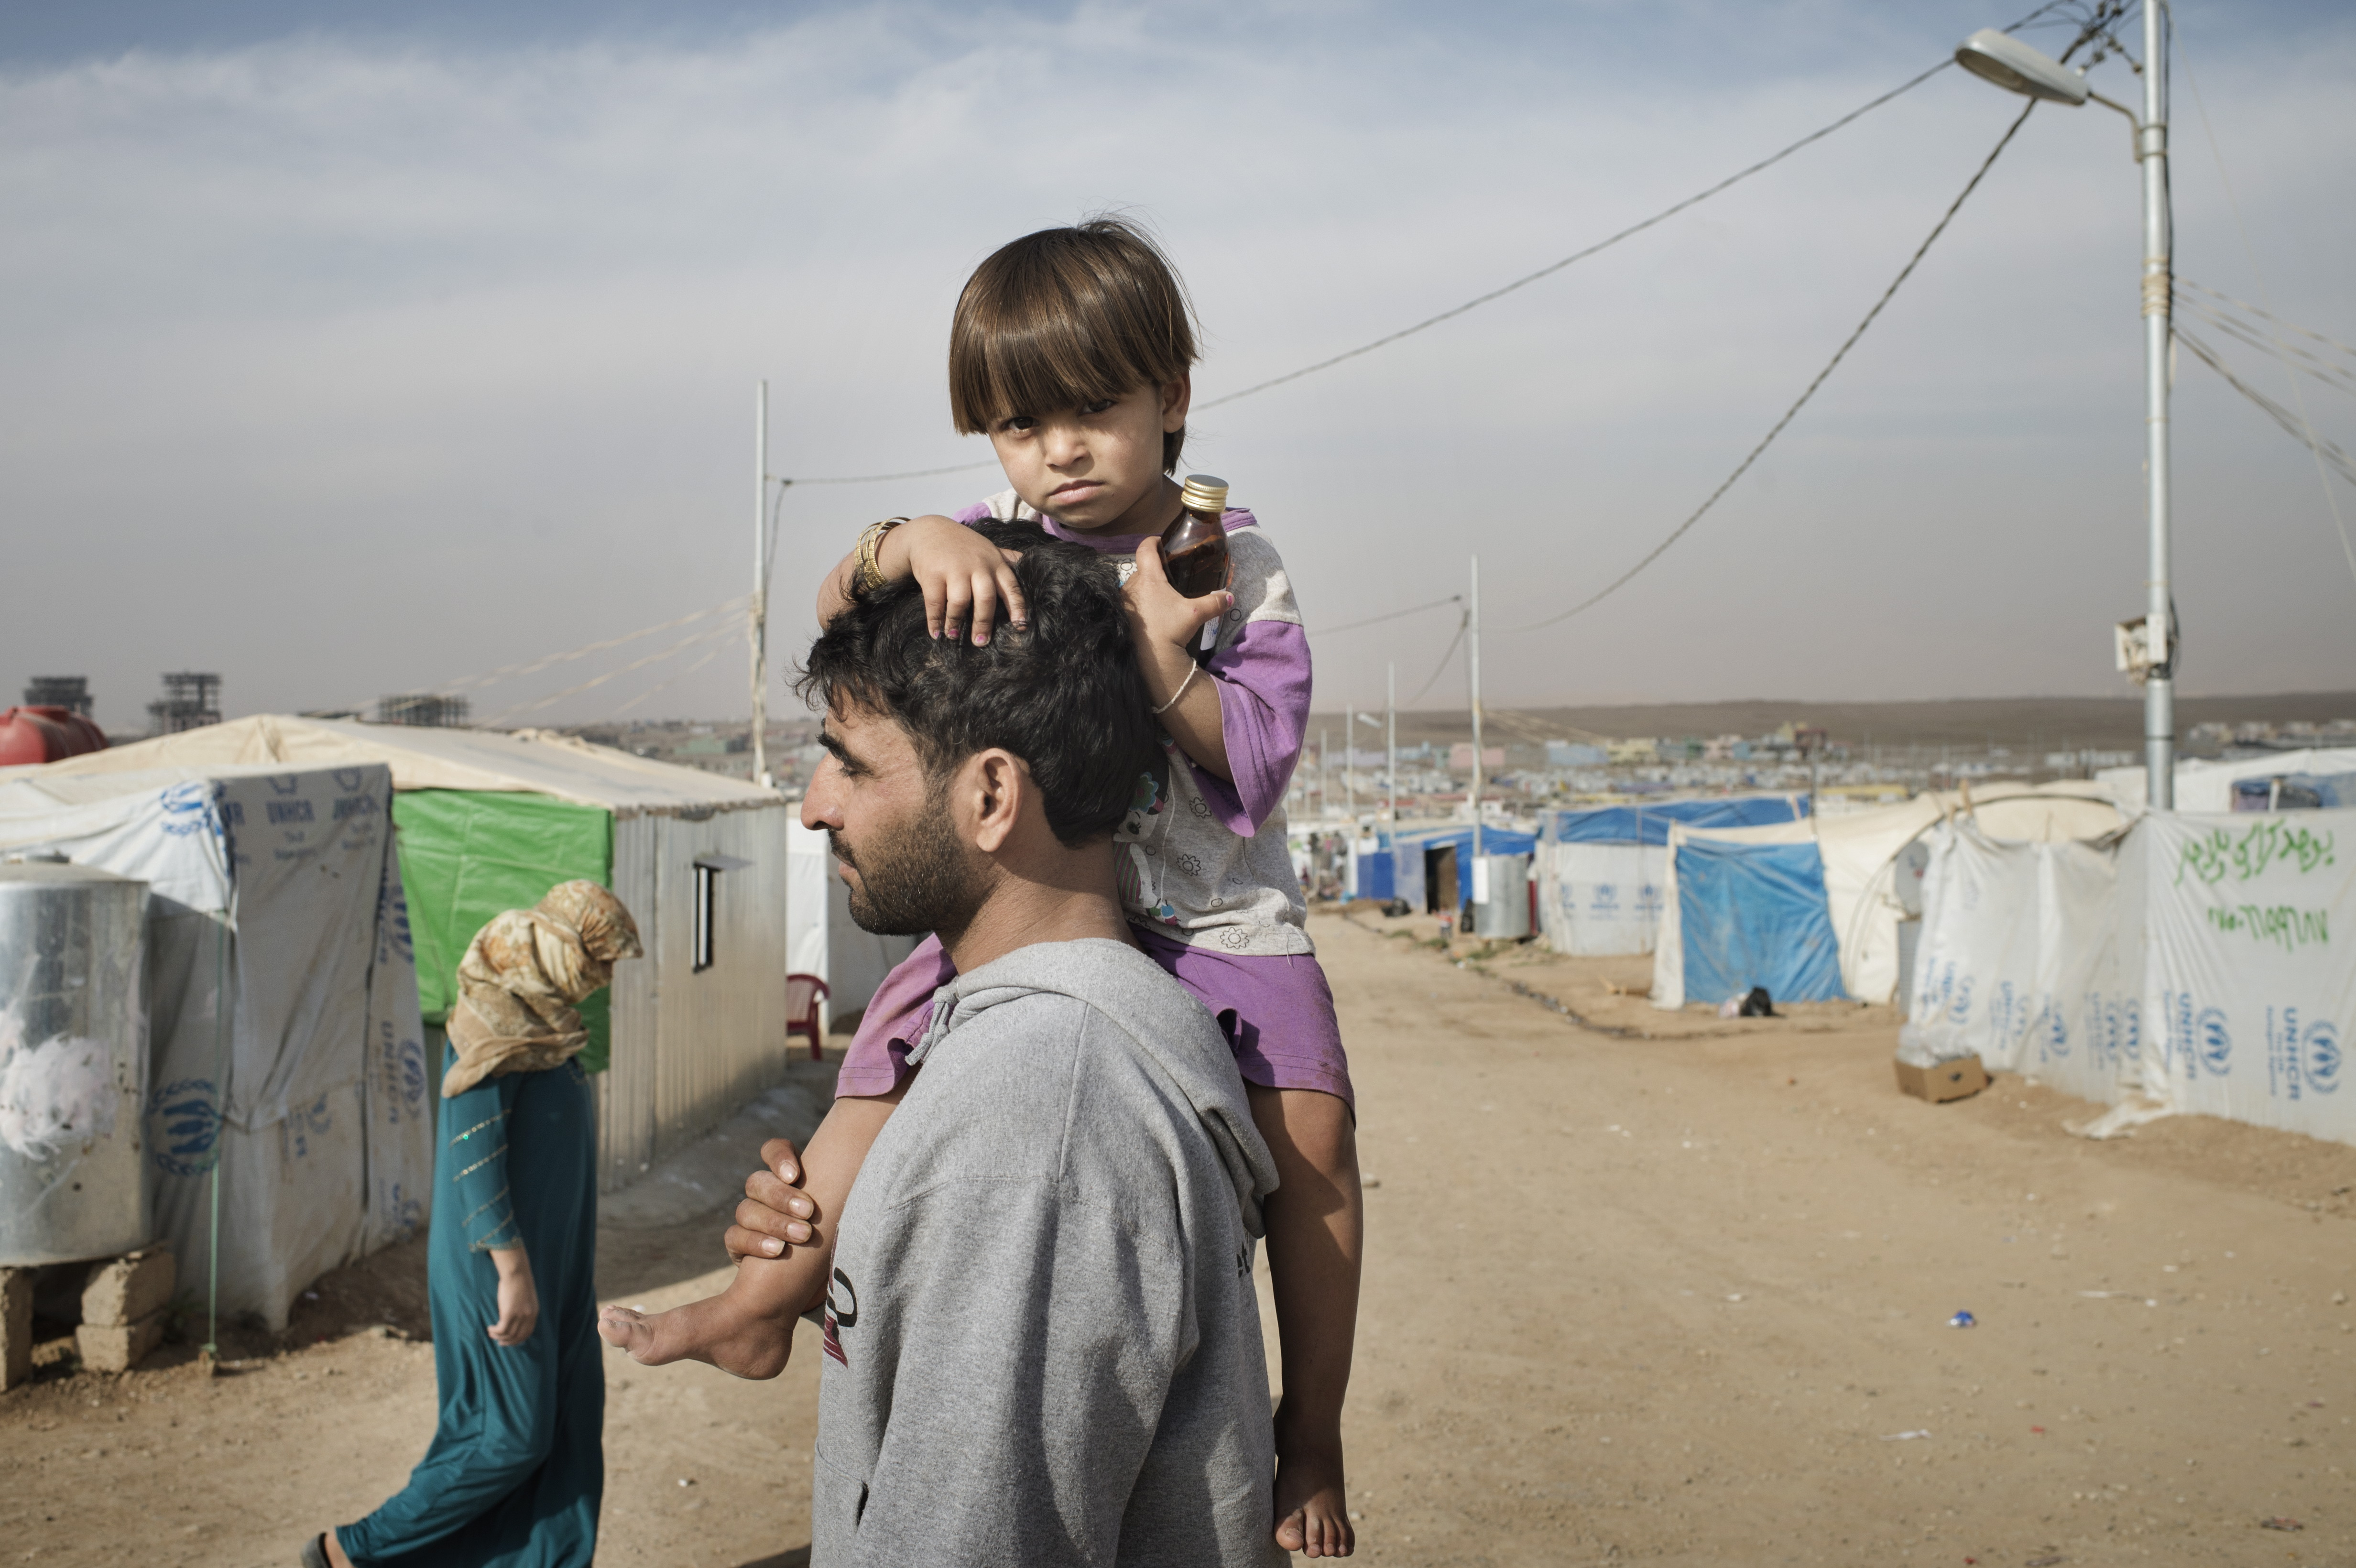 Domiz Refugee Camp was established by local authorities back in April 2012 to host the Syrian Kurds. The camp located 12 miles southeast of Dohuk city, in Iraqi Kurdistan and some 40 miles from the Syria/Iraq border. So far the total number of Syrian refugees in Kurdistan region is 60,151.